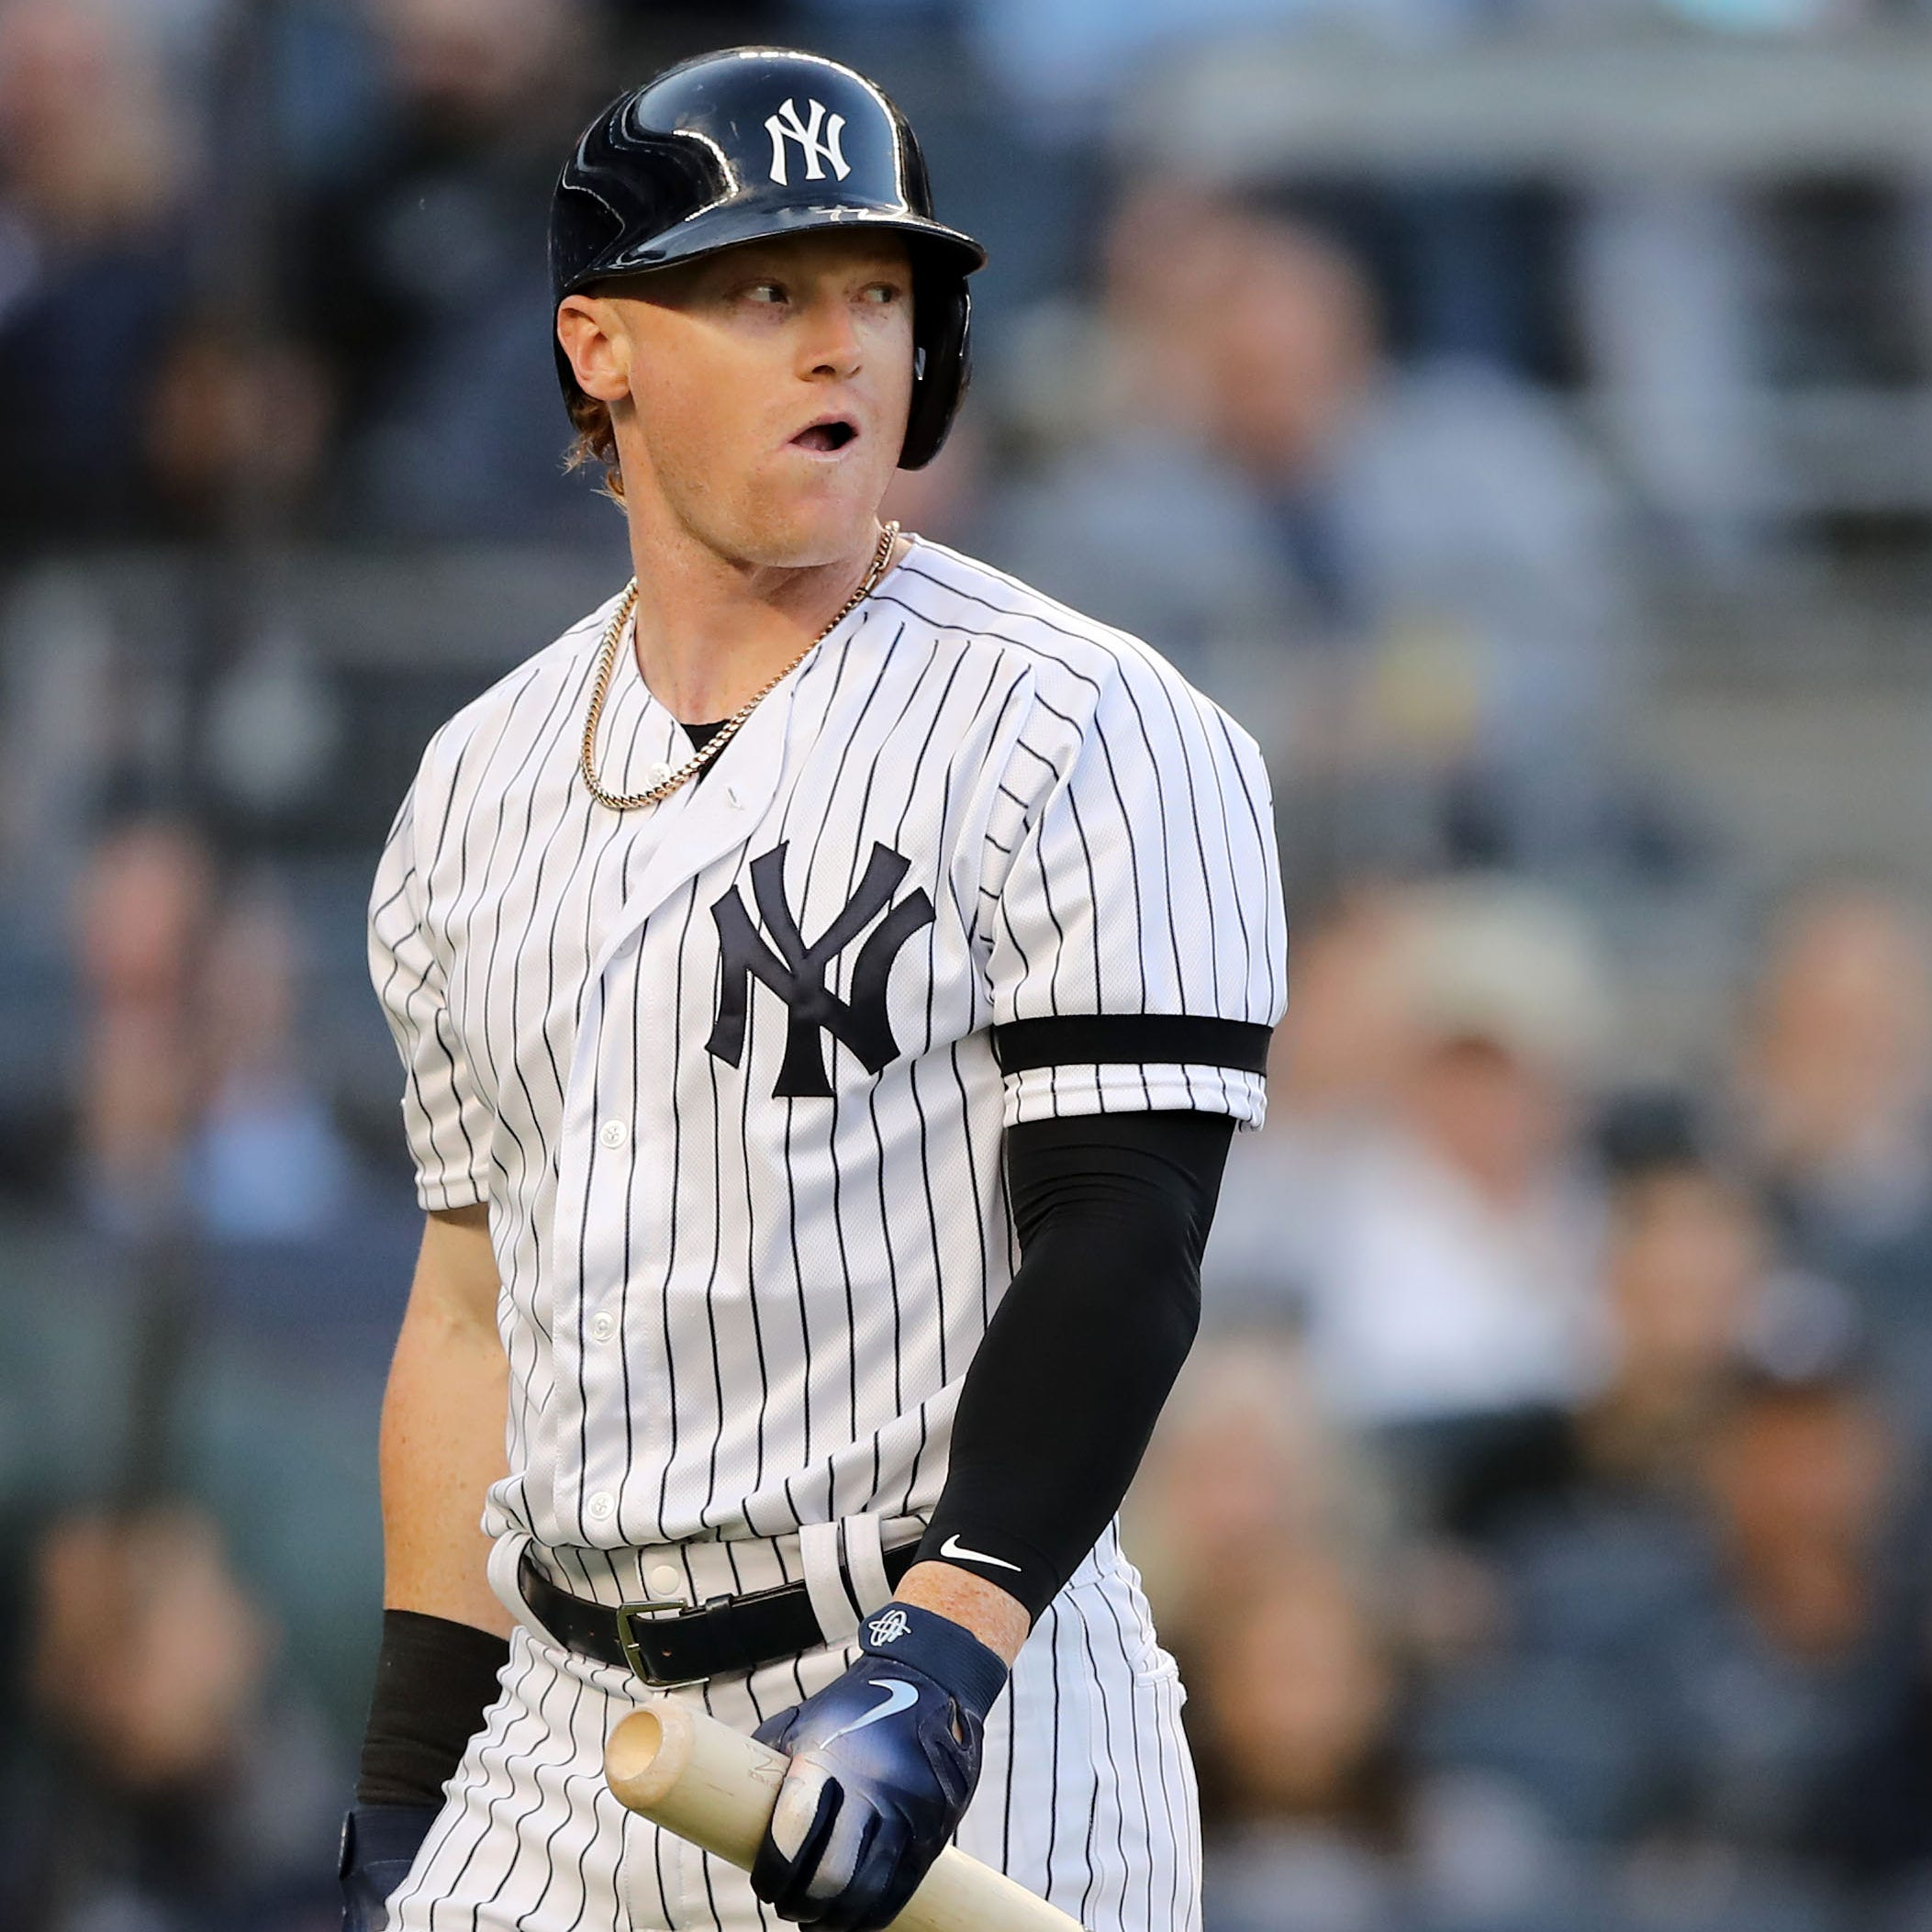 A look at where four New York Yankees stand this season so far